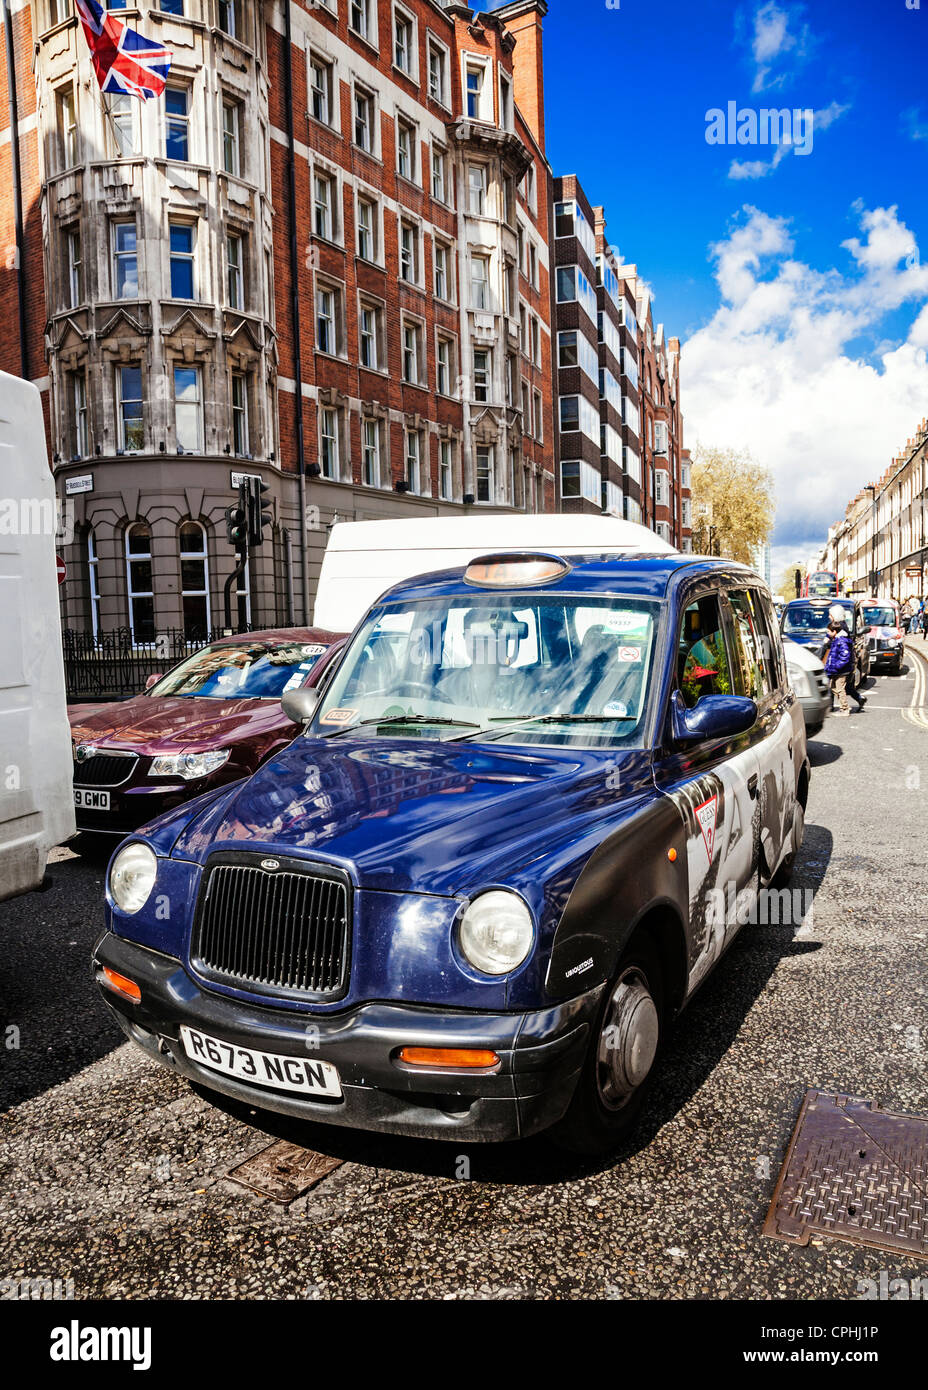 London Taxi cab, London, England. - Stock Image